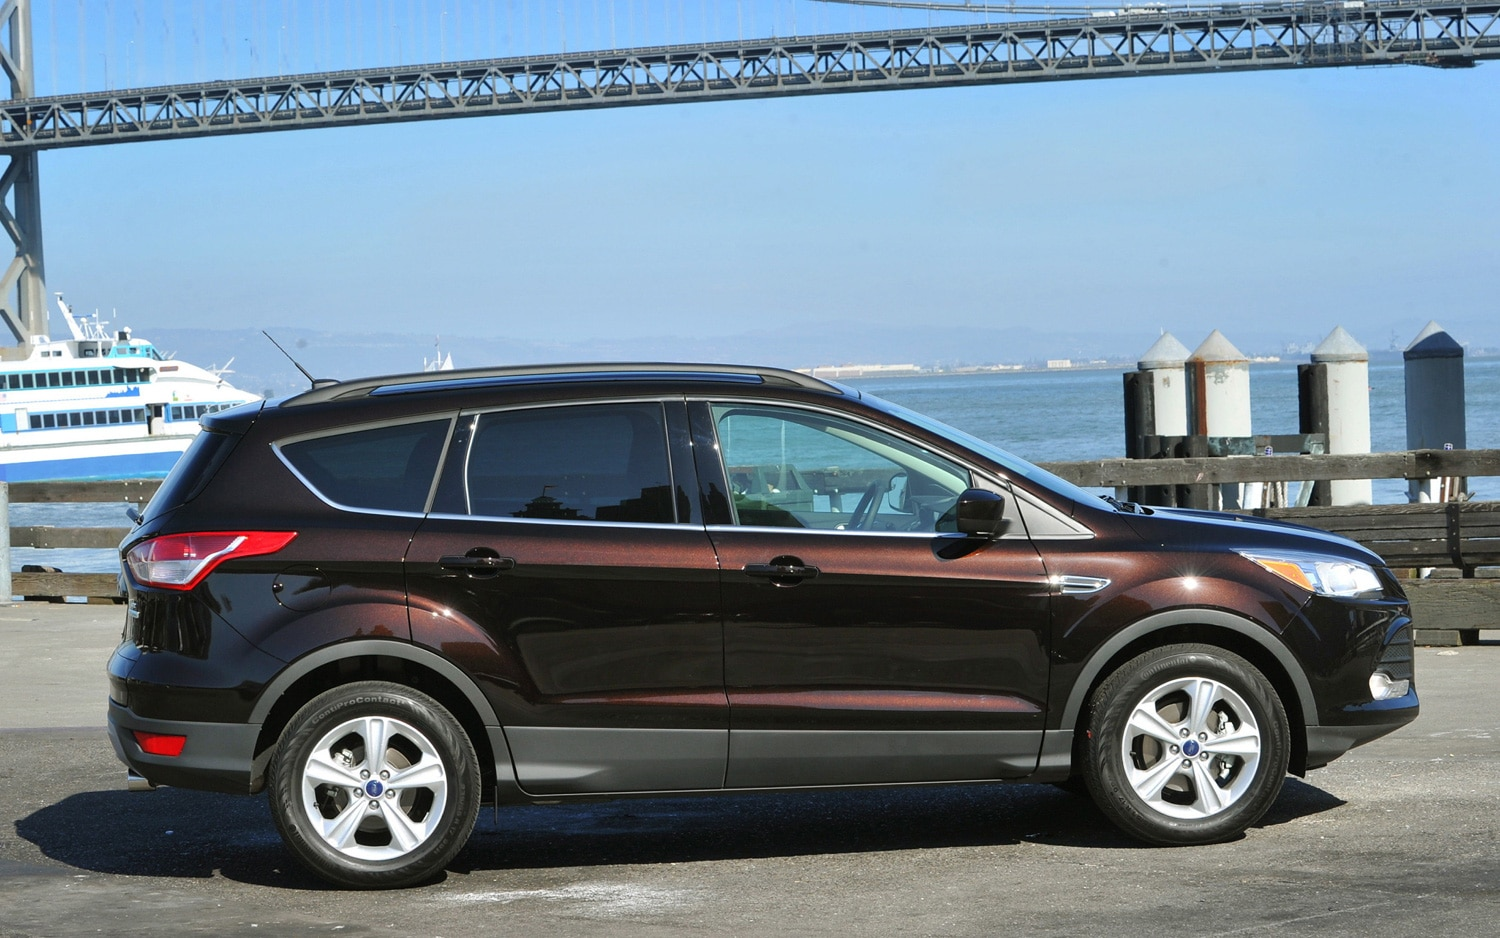 recall central ford recalls 2013 escape ecoboost models. Black Bedroom Furniture Sets. Home Design Ideas